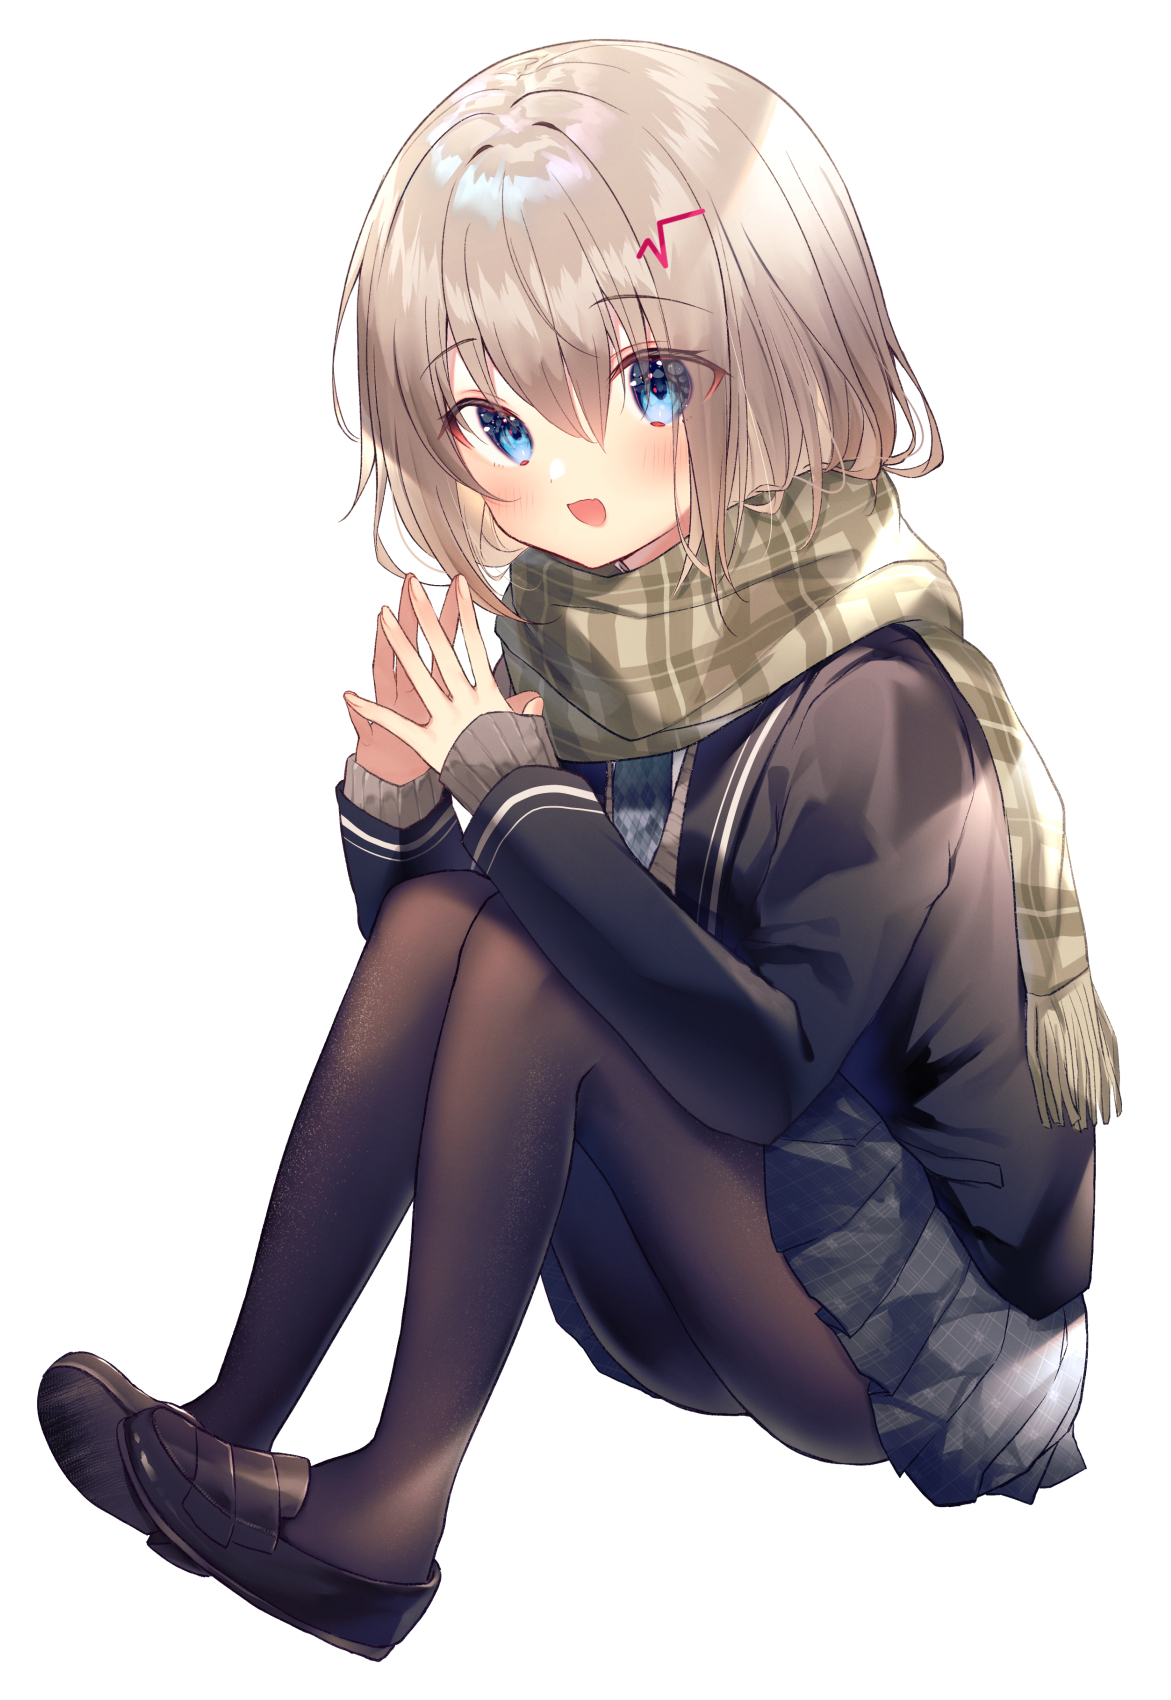 It's chilly… by 餃子ぬこ [Original]